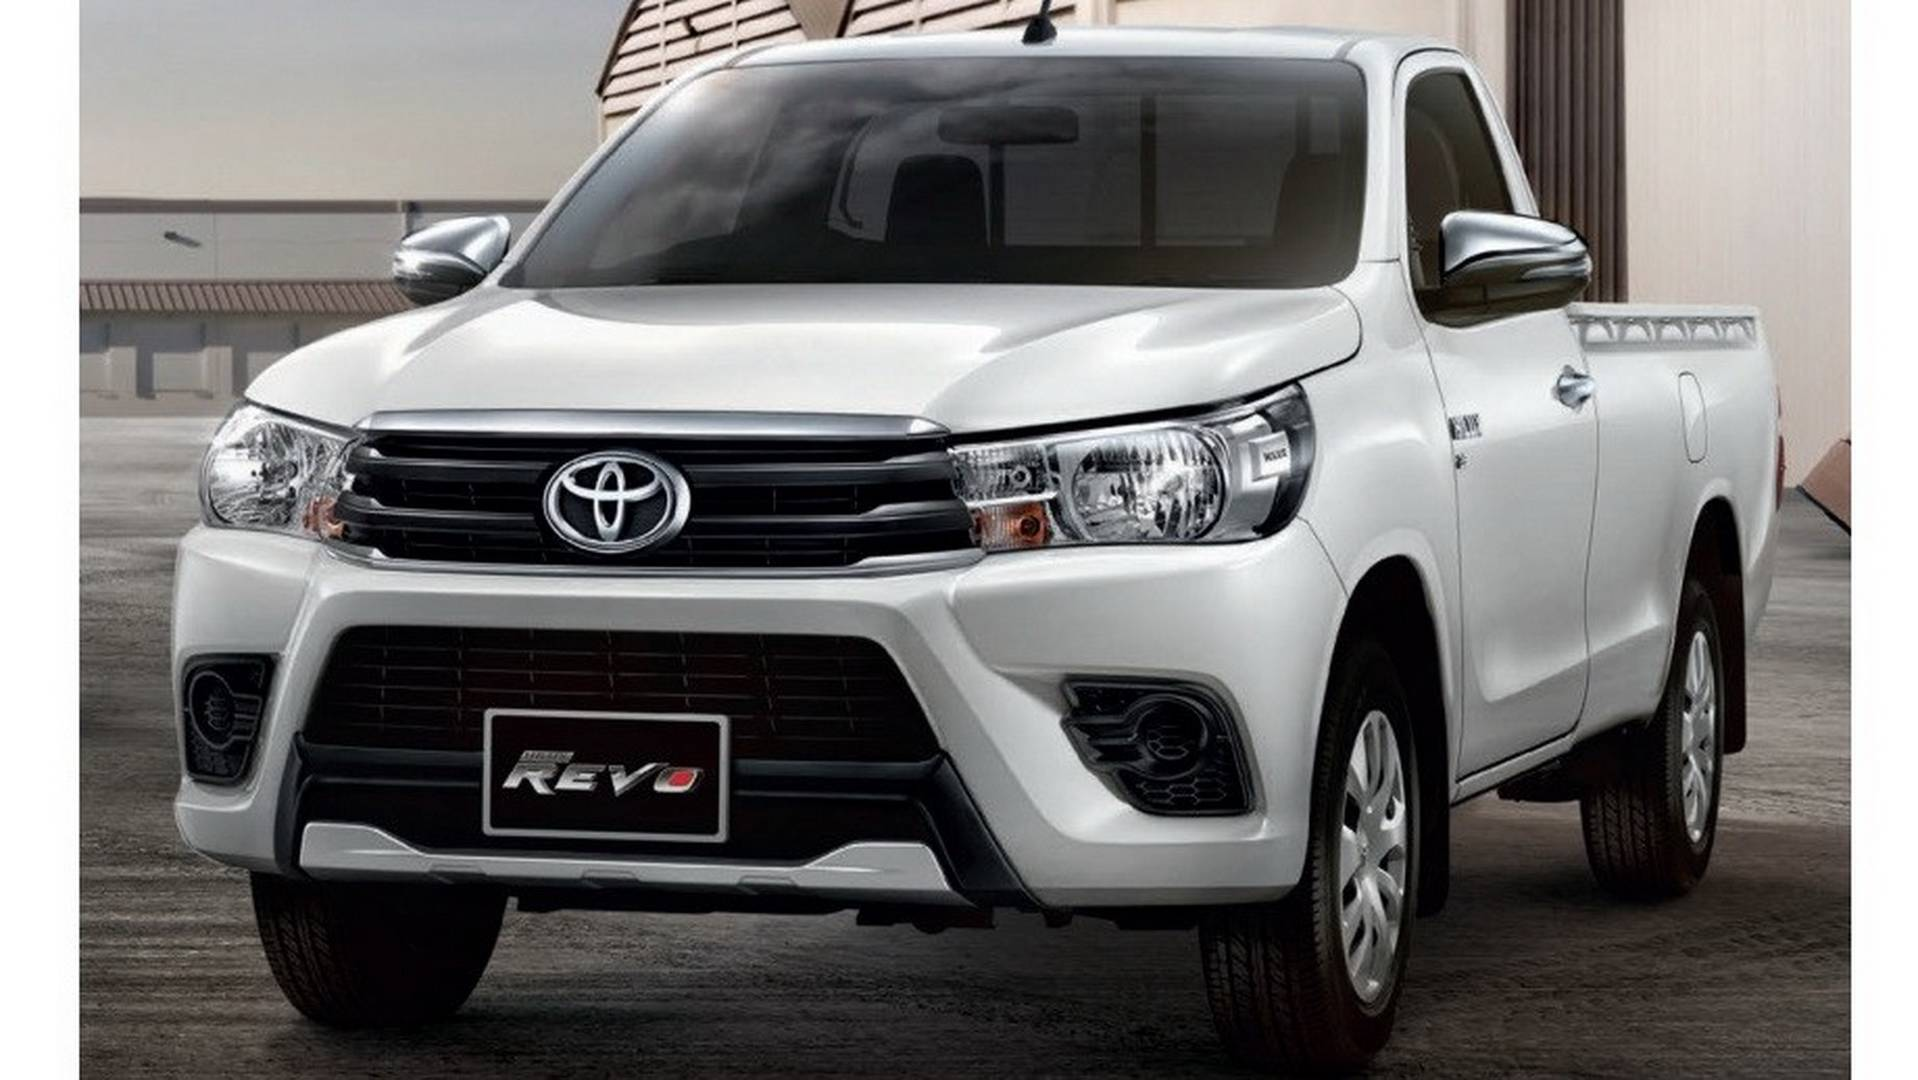 2018 Hilux Facelift South Africa